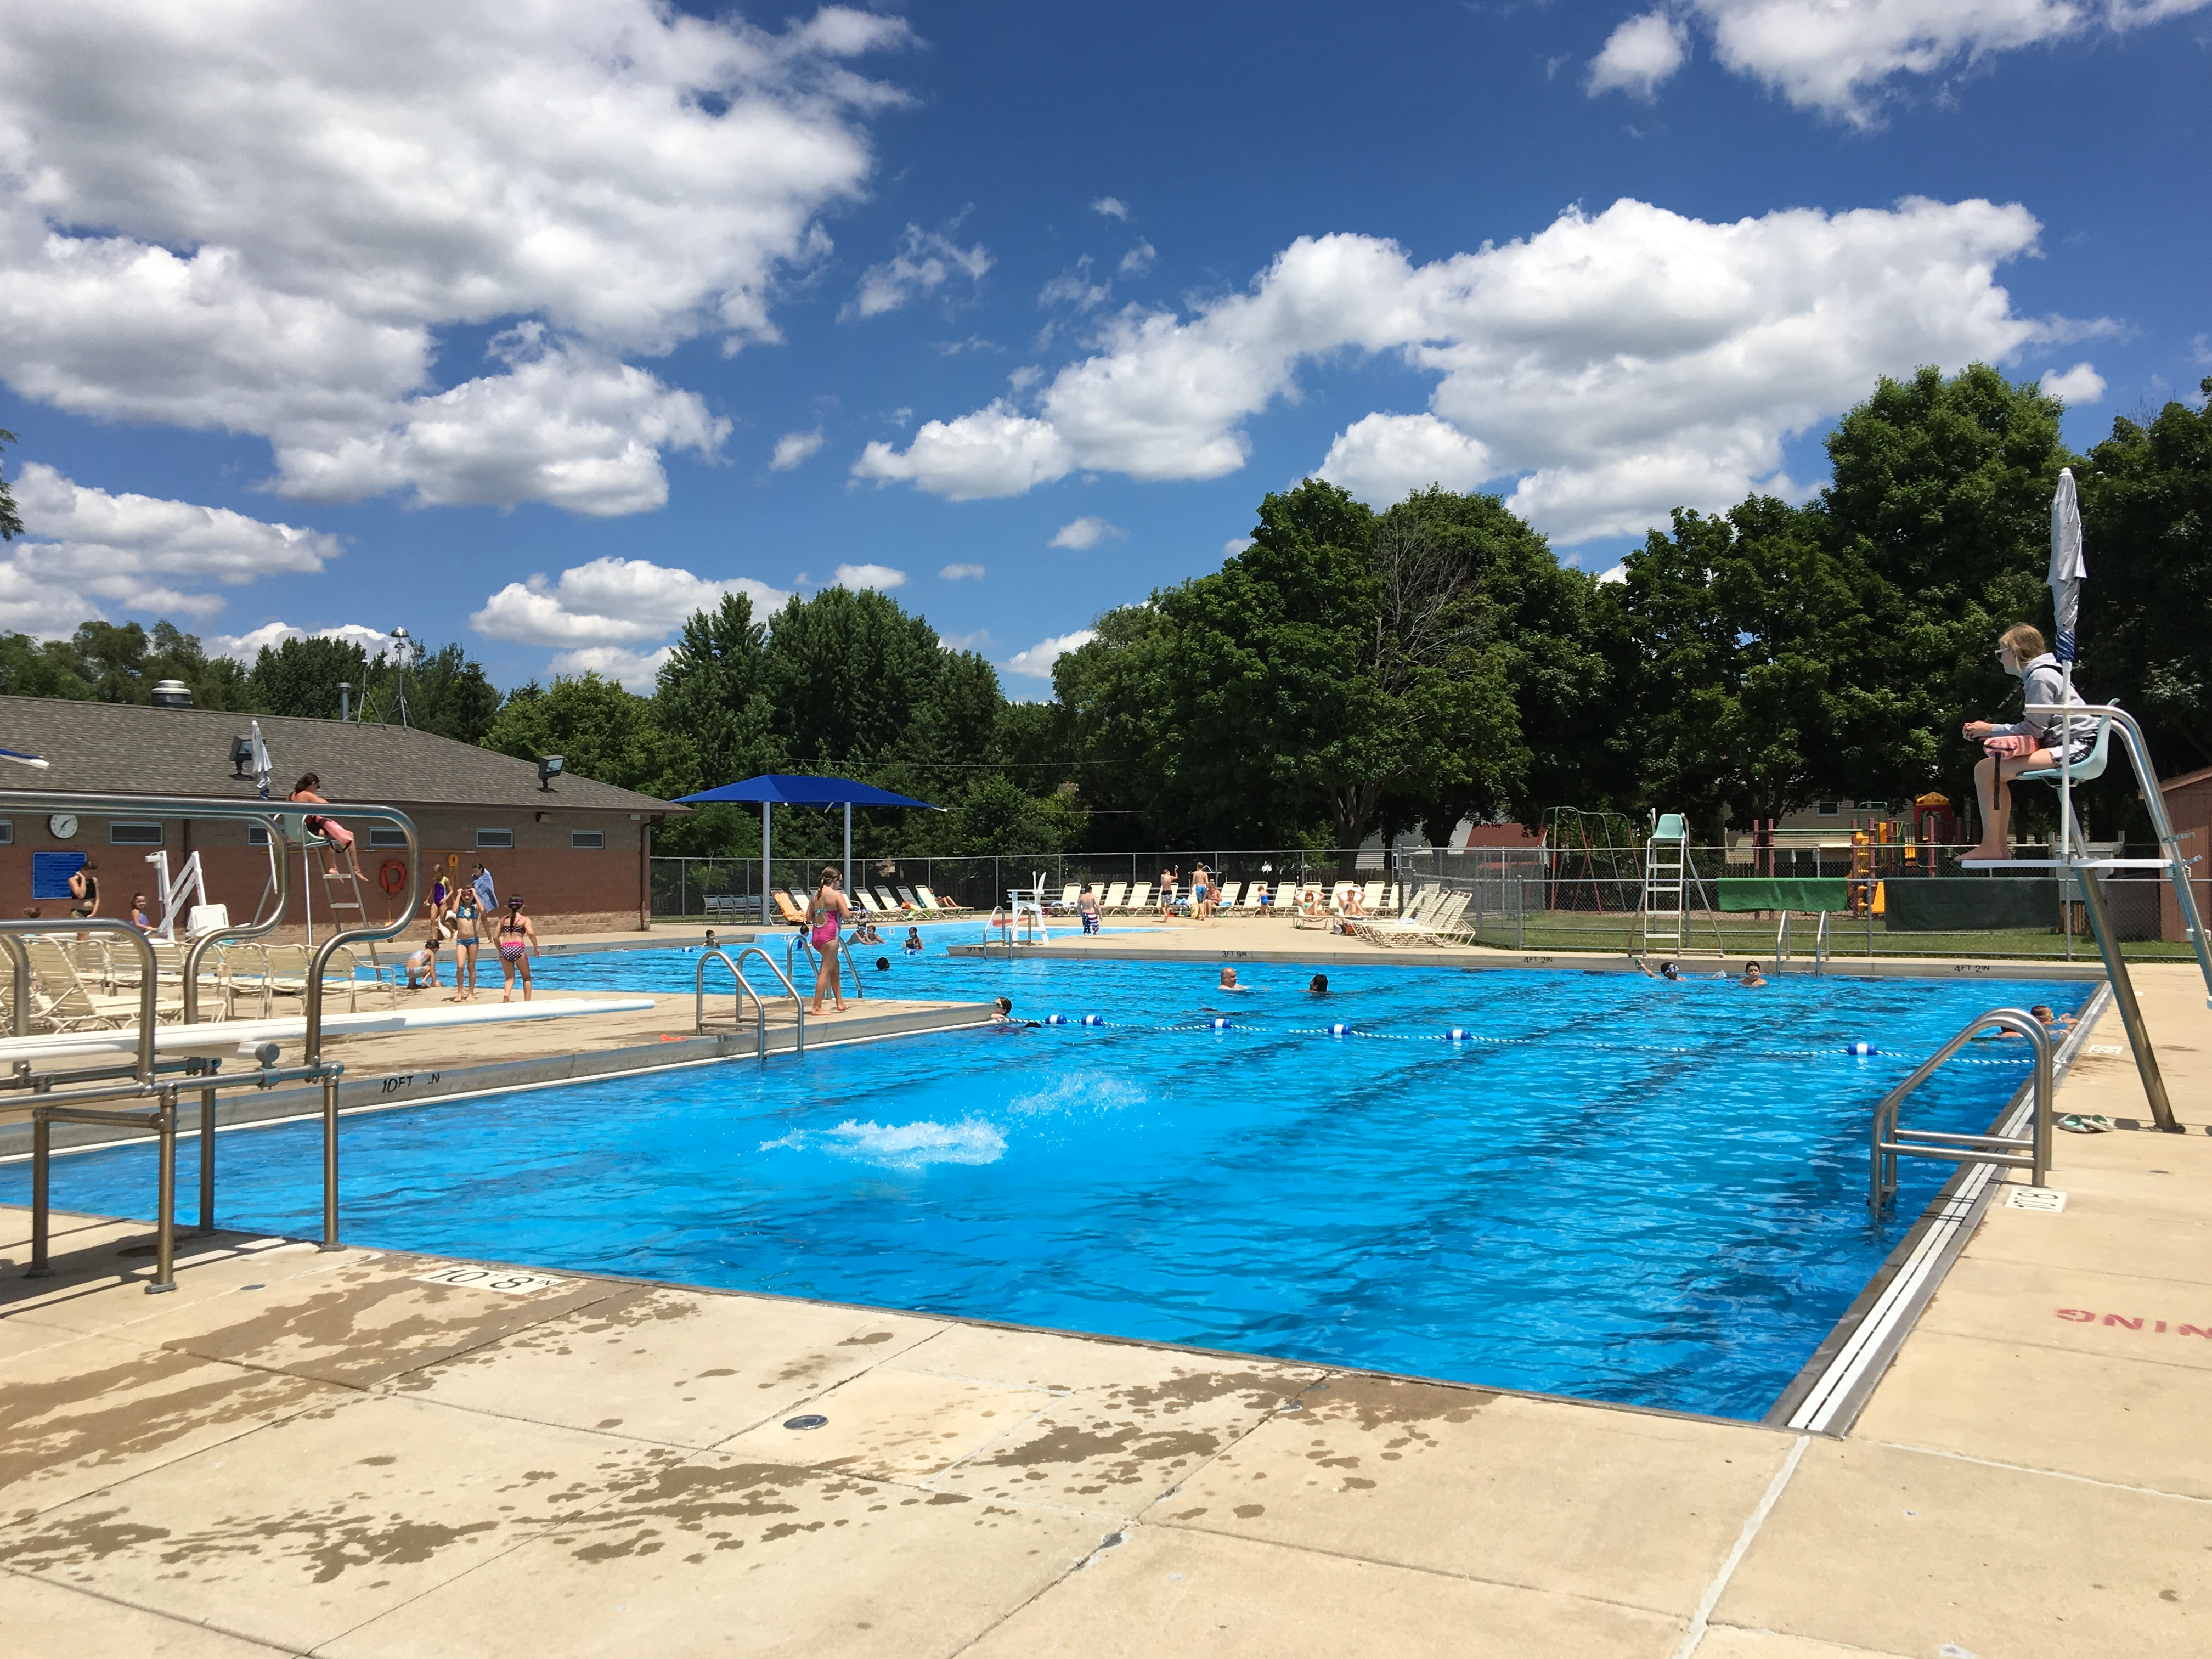 Algonquin il events calendar daily open swim hours - Bangsar swimming pool opening hours ...